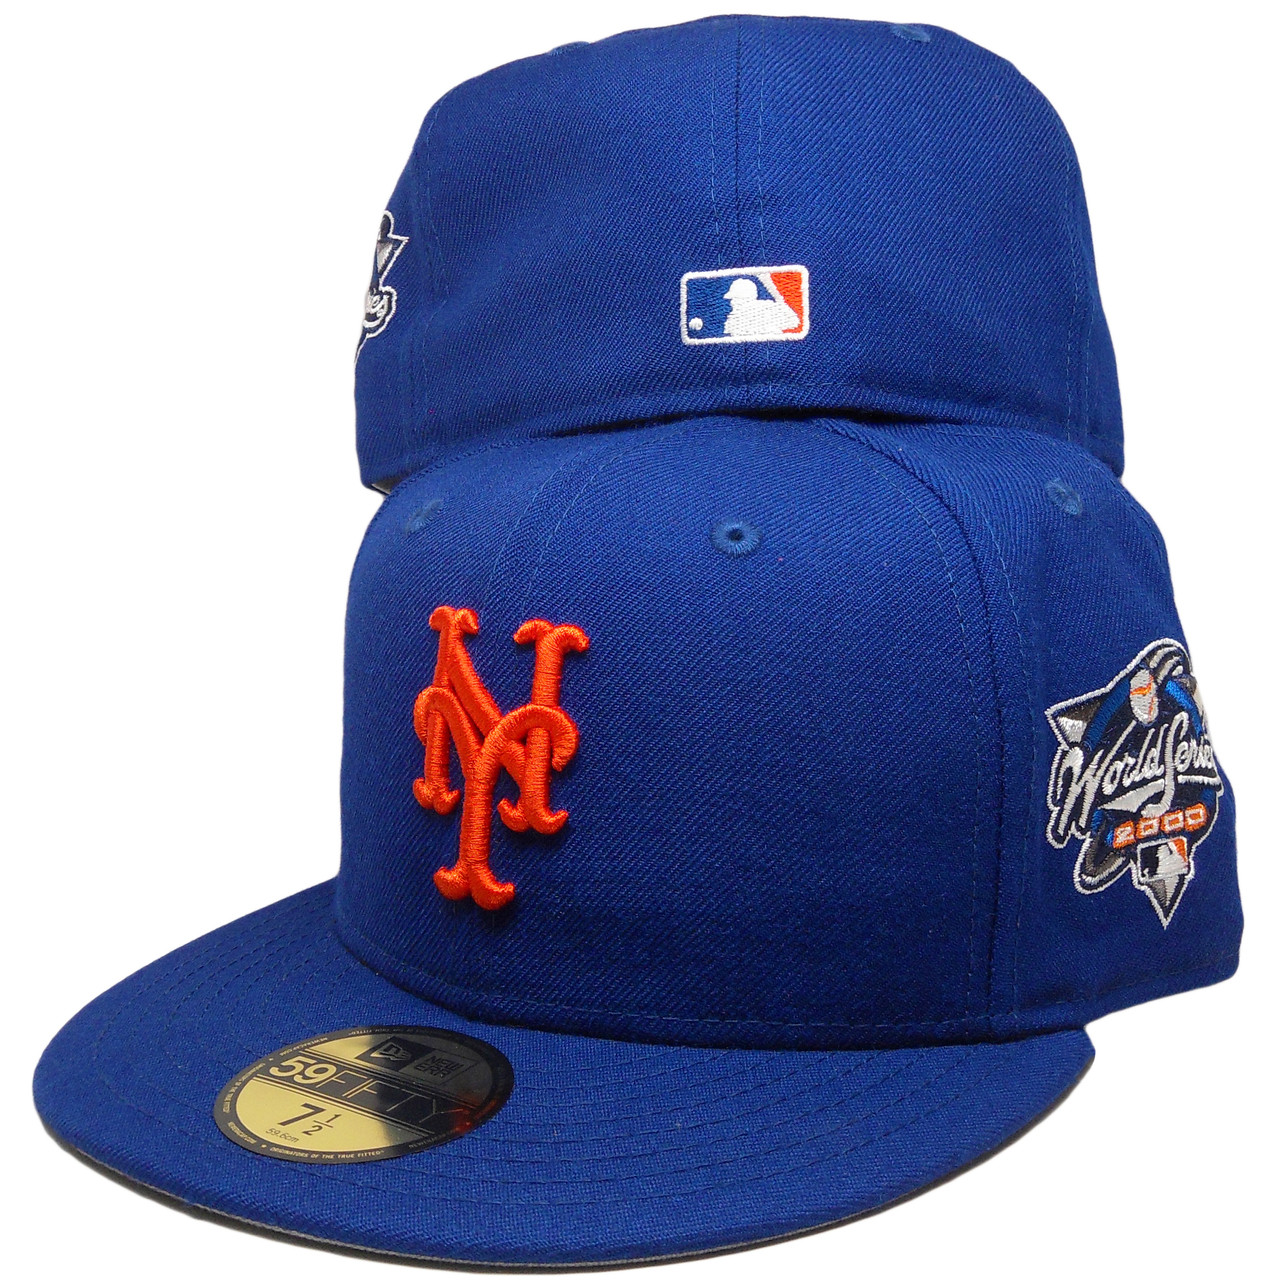 newest collection 485f4 f0478 New York Mets New Era Custom 59Fifty Fitted Hat - Royal, Orange, White